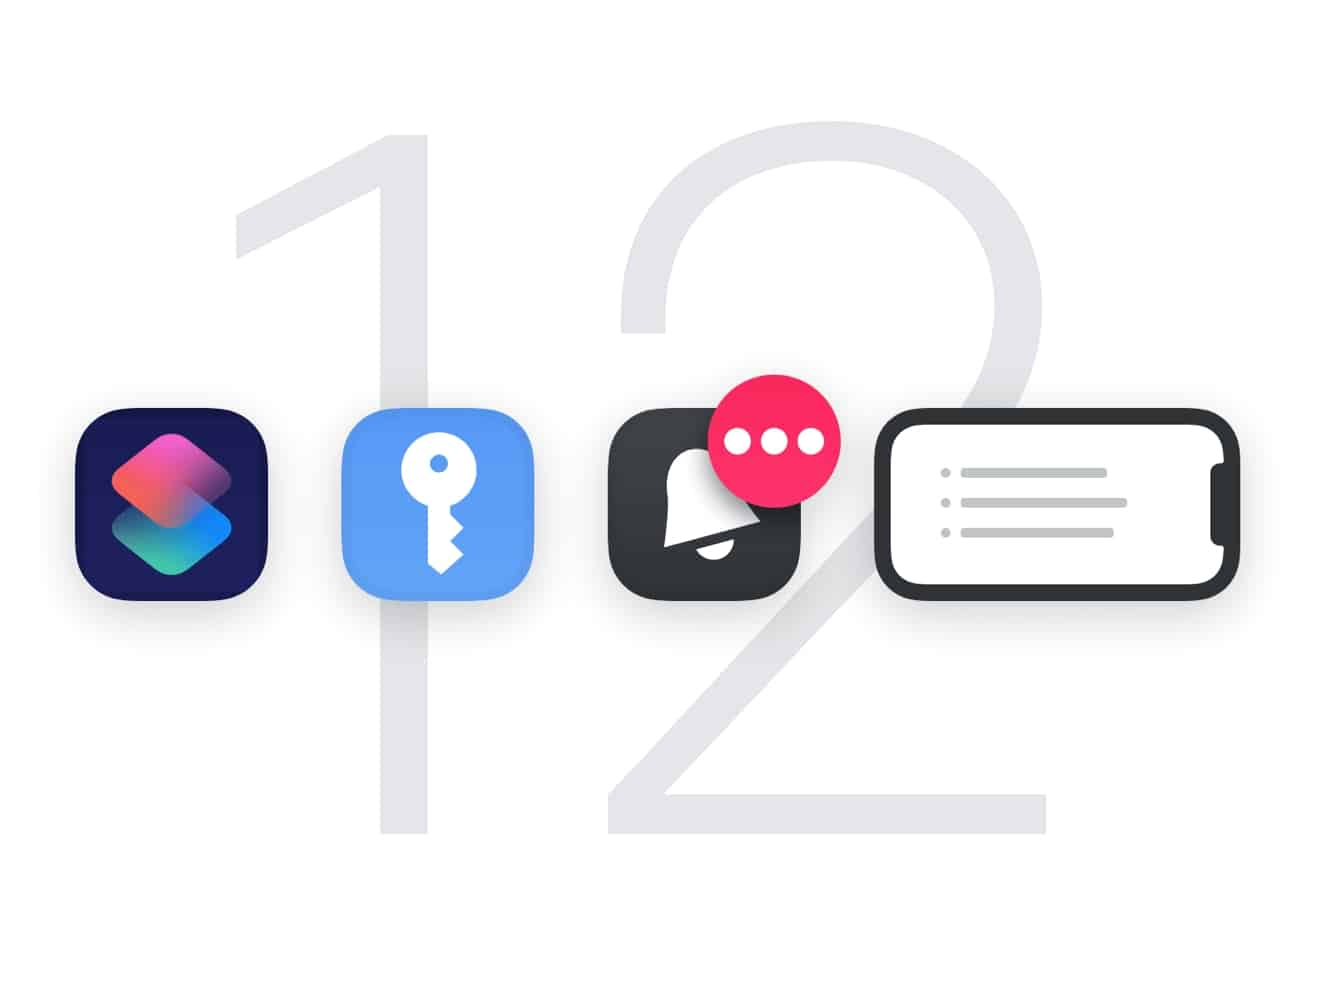 Cultured Code releases Things 3.7 with key iOS 12 features